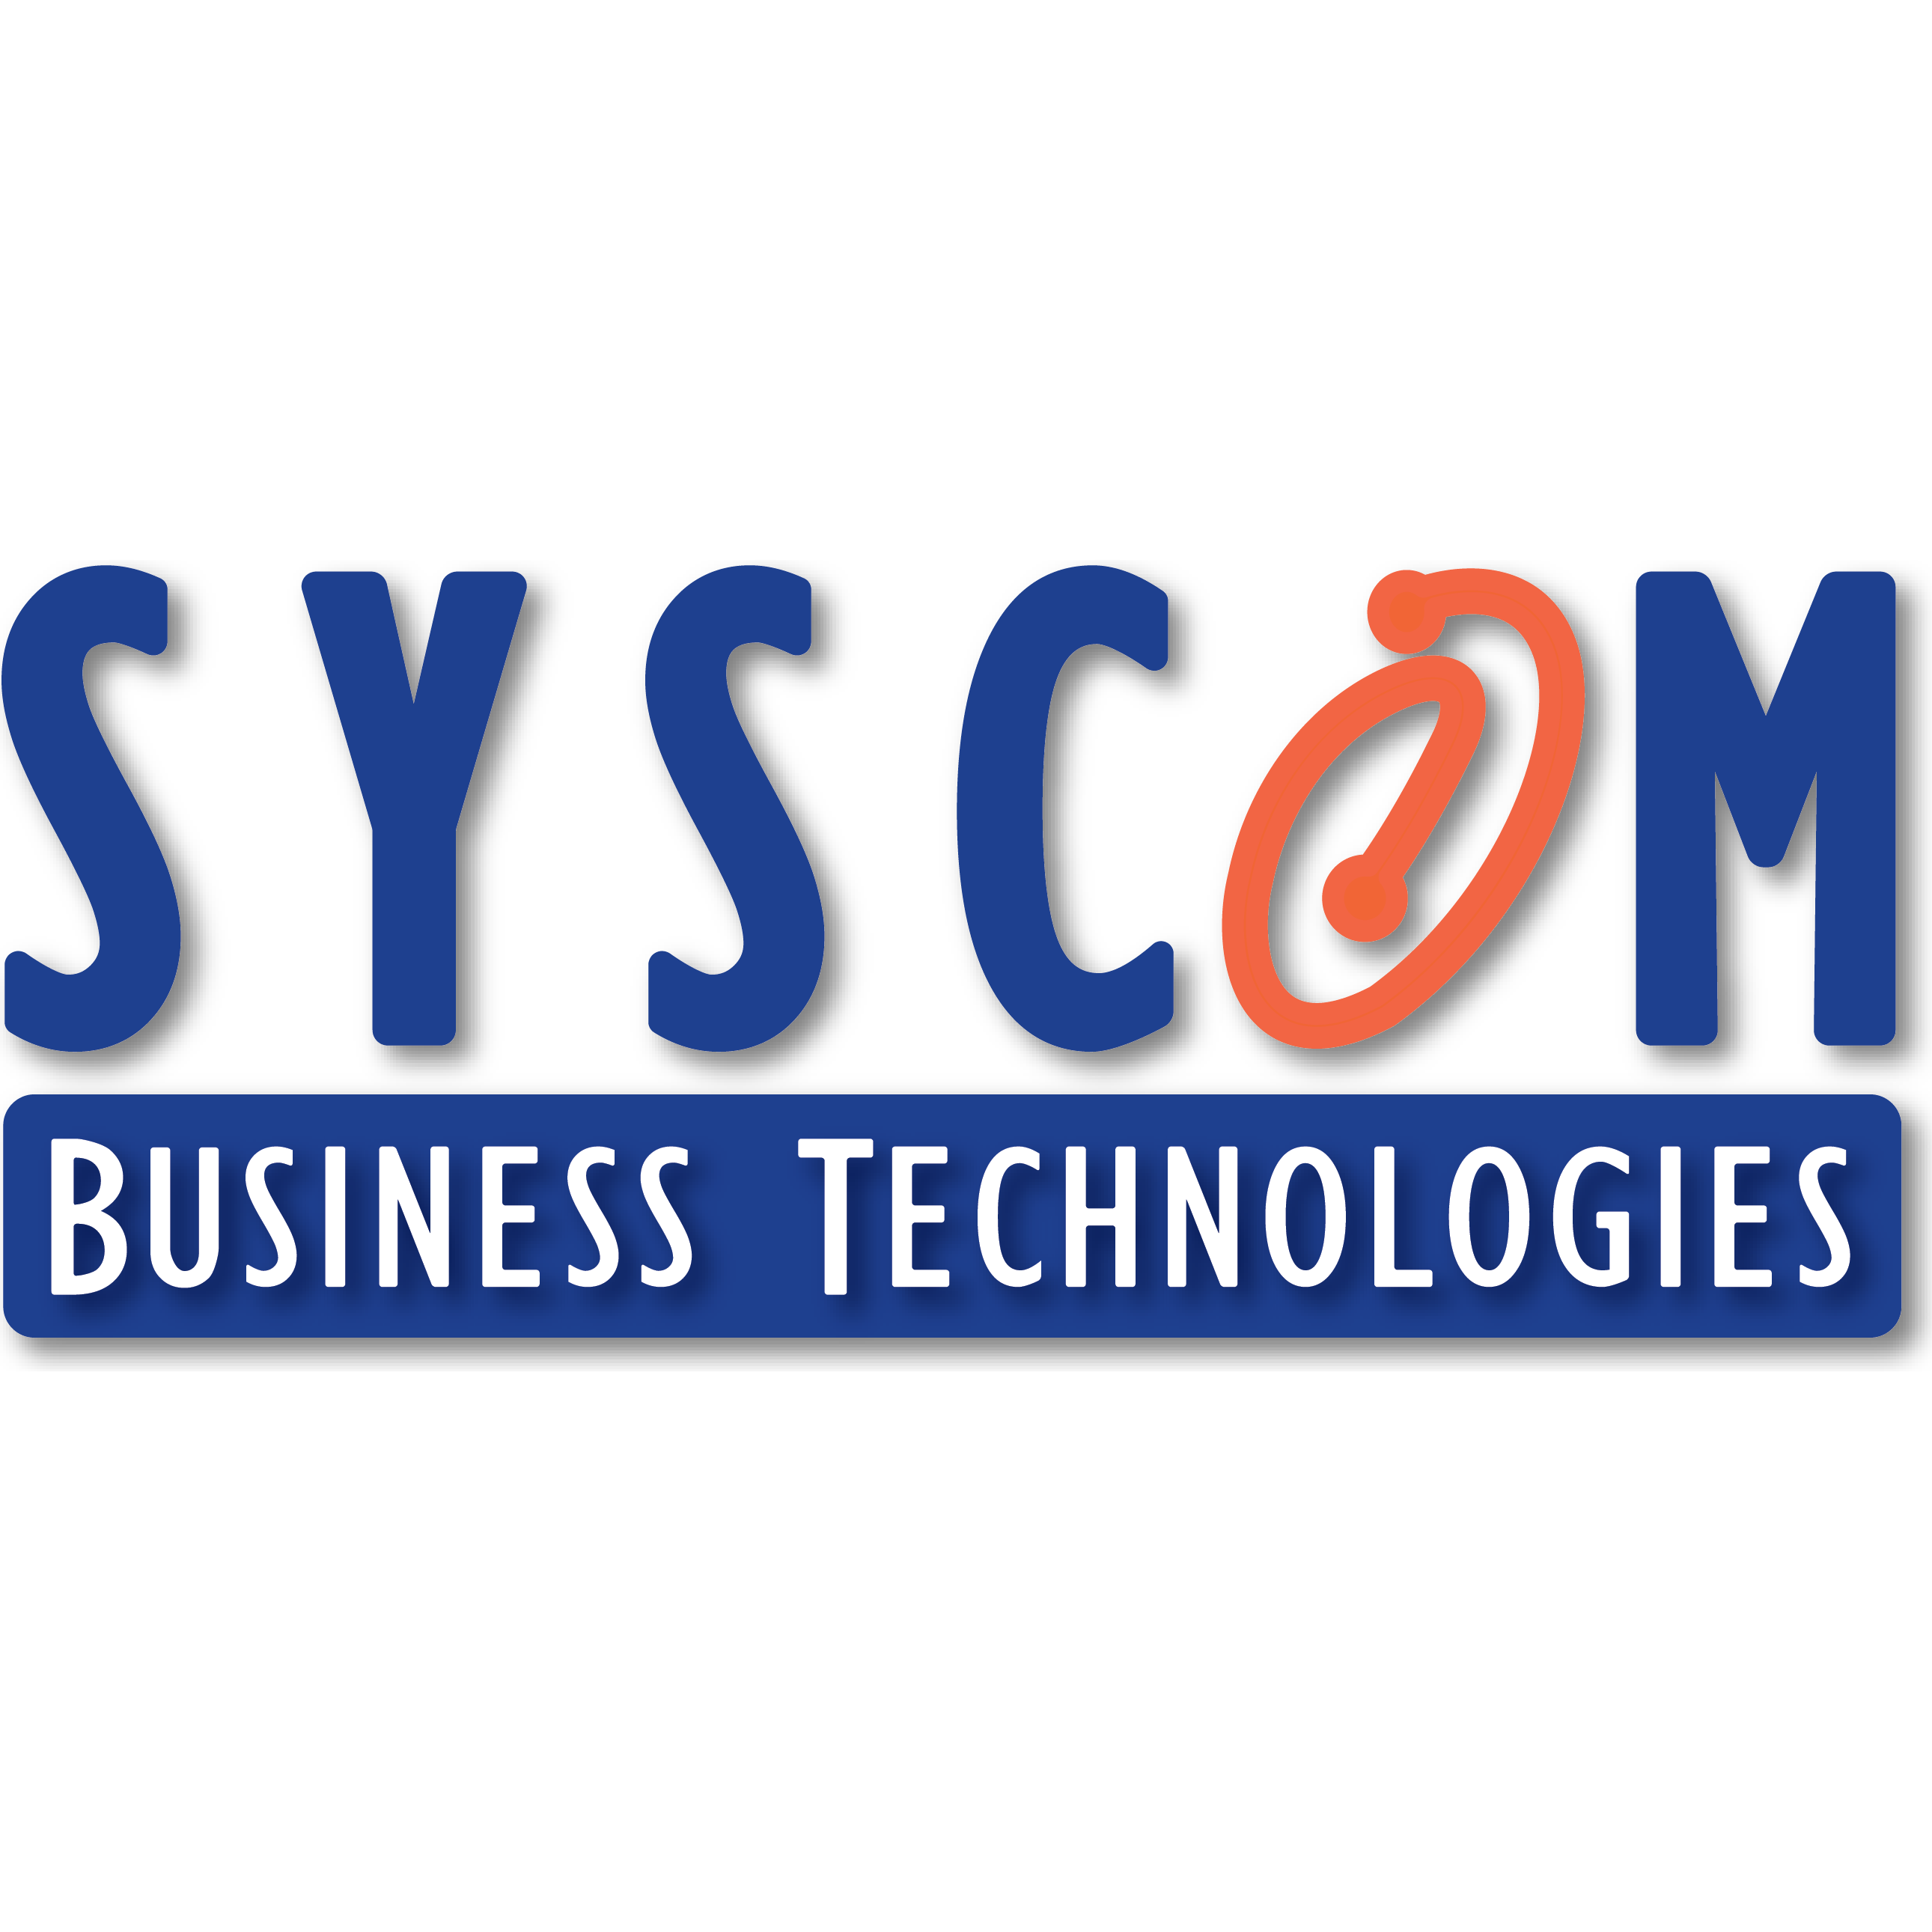 Syscom Business Technologies